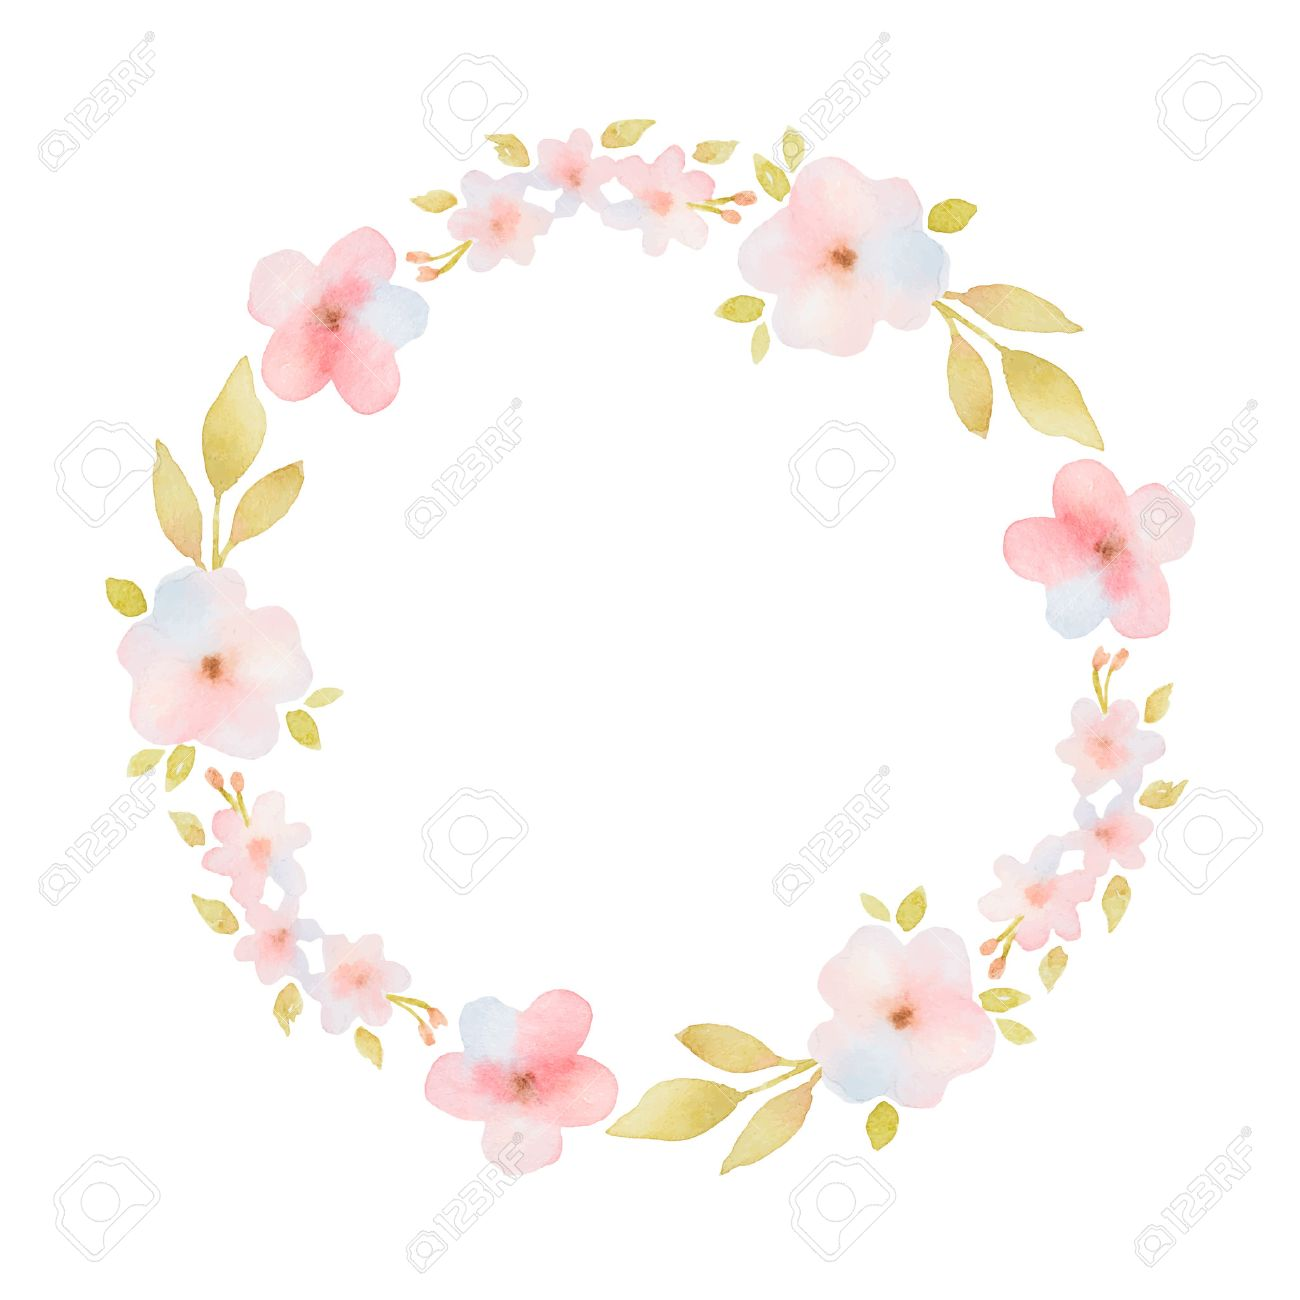 Watercolor Round Frame With Delicate Pink Flowers And Leaves